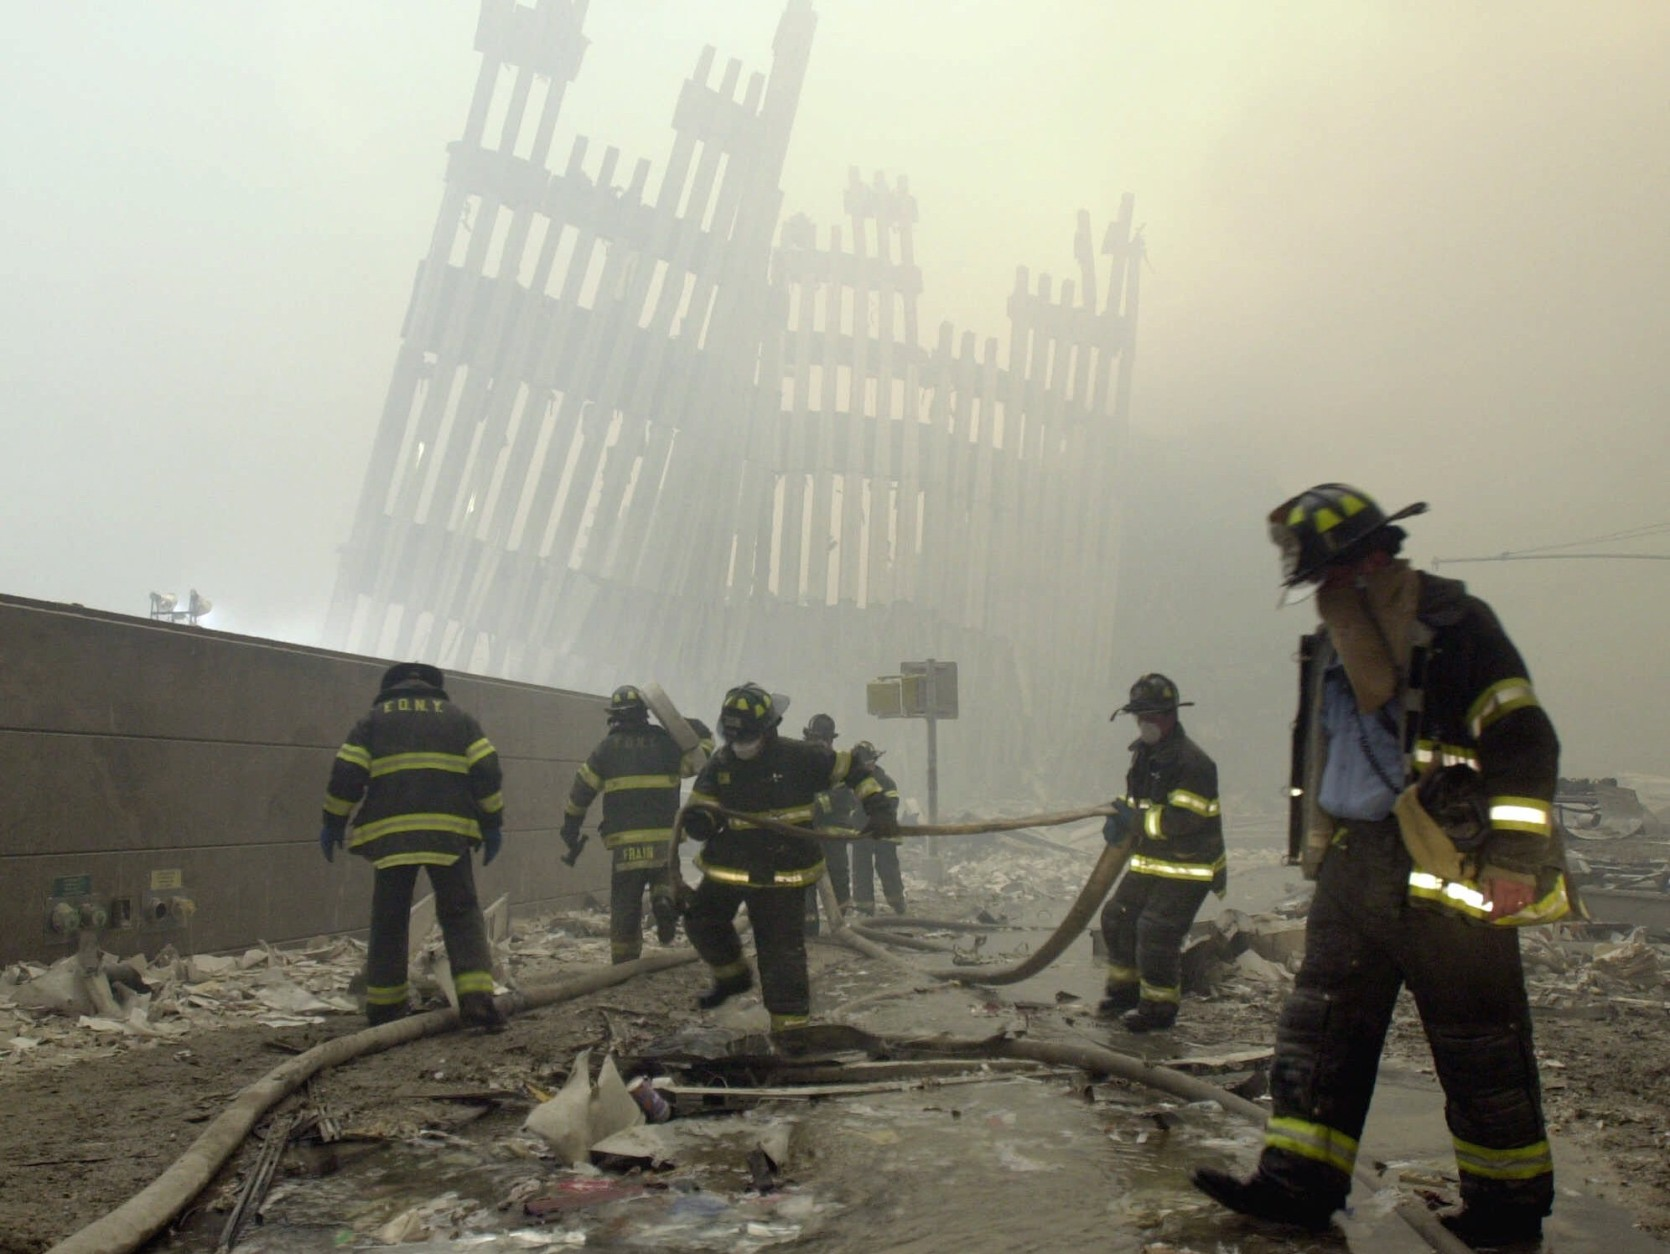 THEN-- With the skeleton of the World Trade Center twin towers in the background, New York City firefighters work amid debris on Cortlandt St. after the terrorist attacks of Tuesday, Sept. 11, 2001.  (AP Photo/Mark Lennihan)